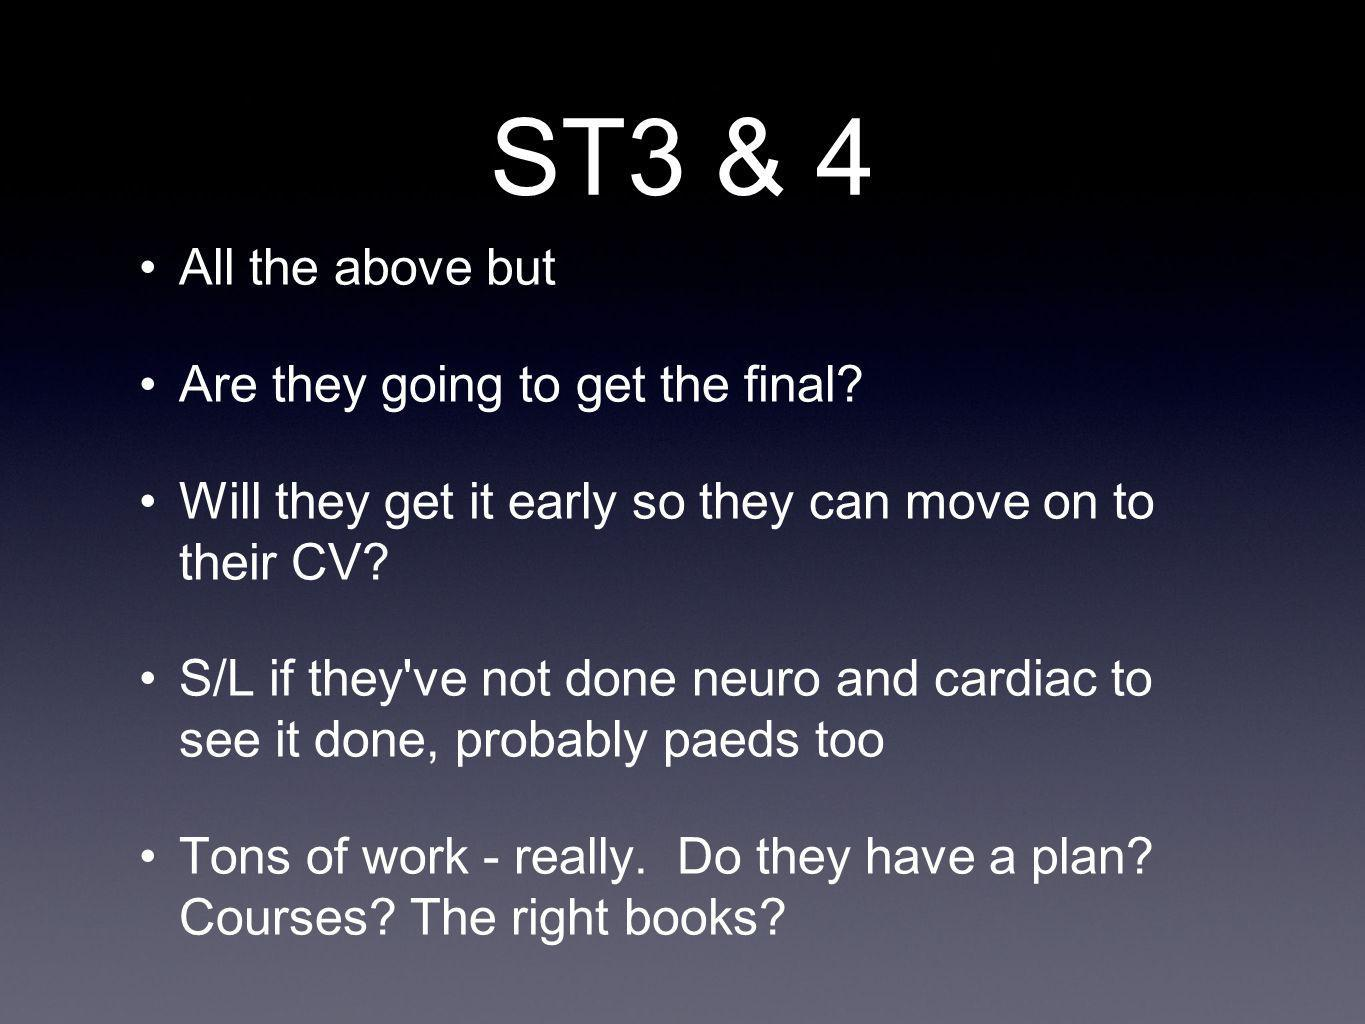 ST3 & 4 All the above but Are they going to get the final? Will they get it early so they can move on to their CV? S/L if they've not done neuro and c